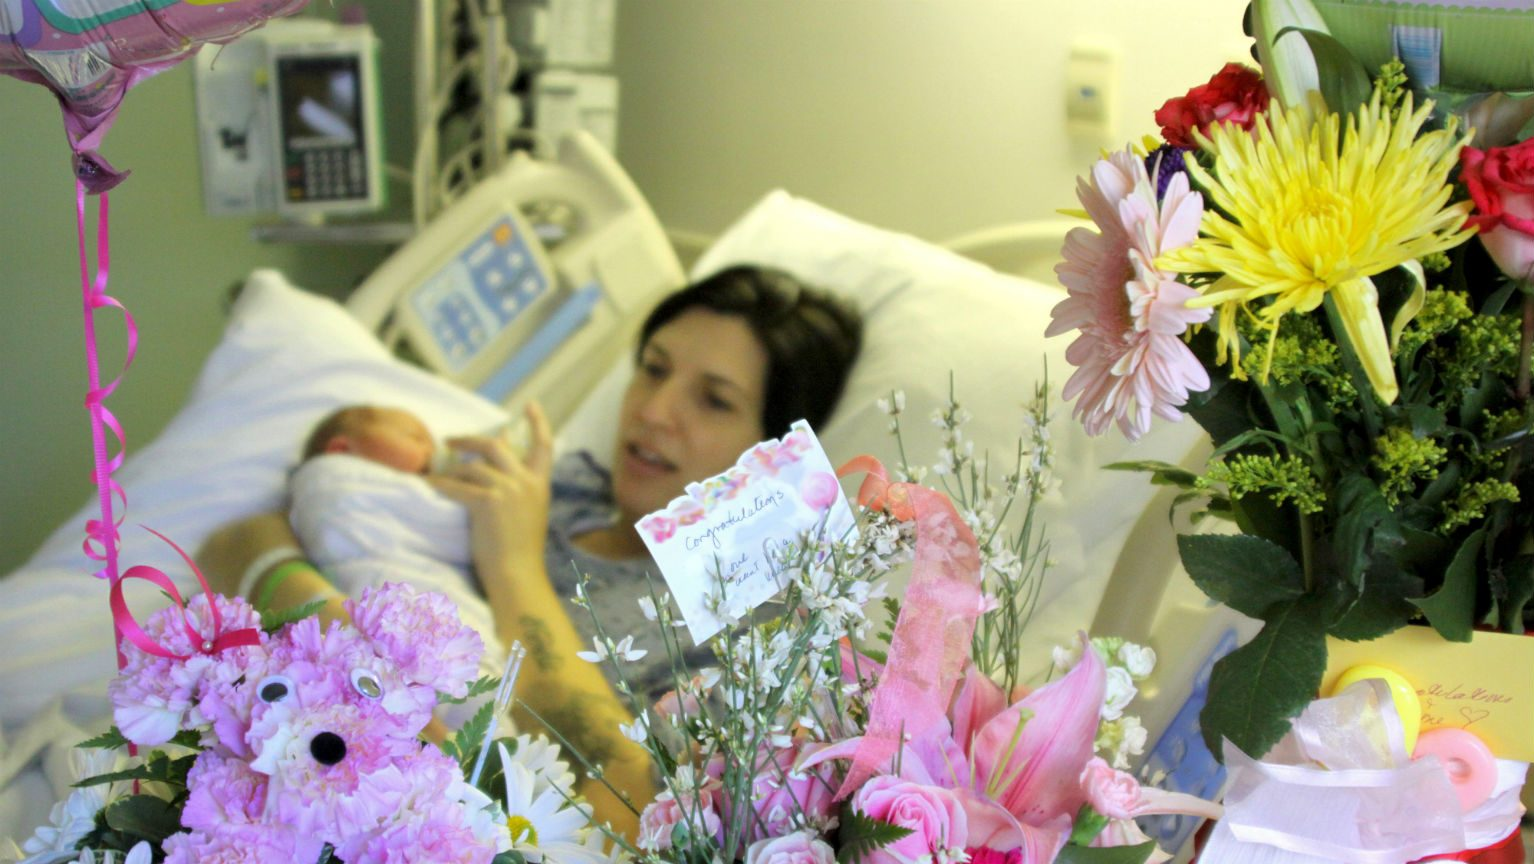 Woman and baby in hospital room surrounded by flowers